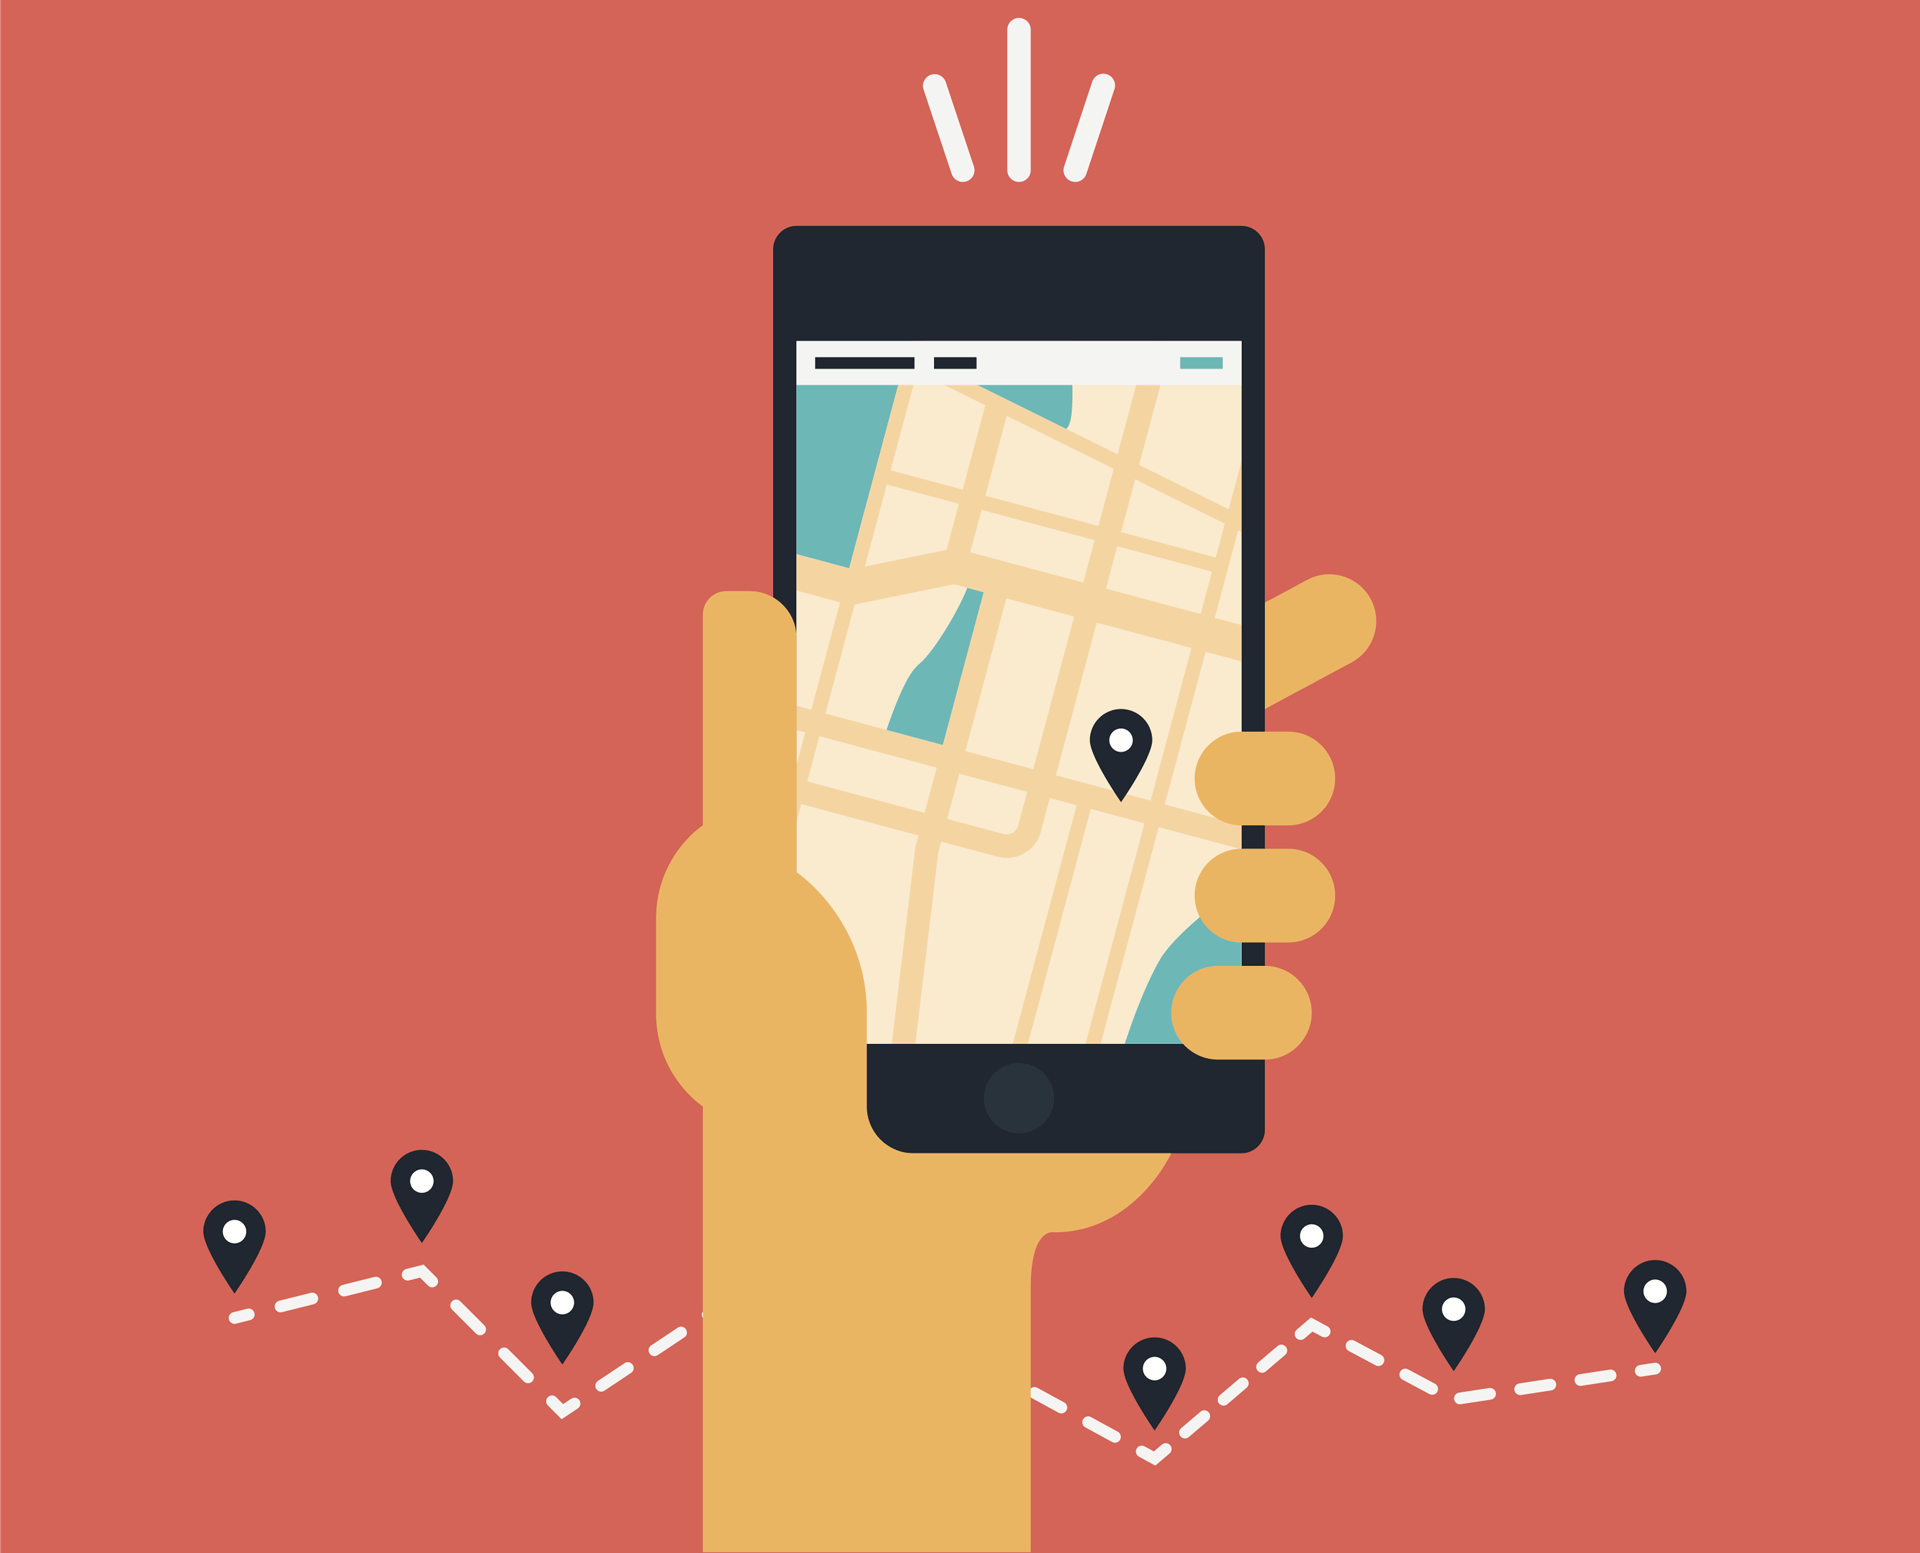 Which one is the most excellent cell phone tracker to remotely track cellular phones